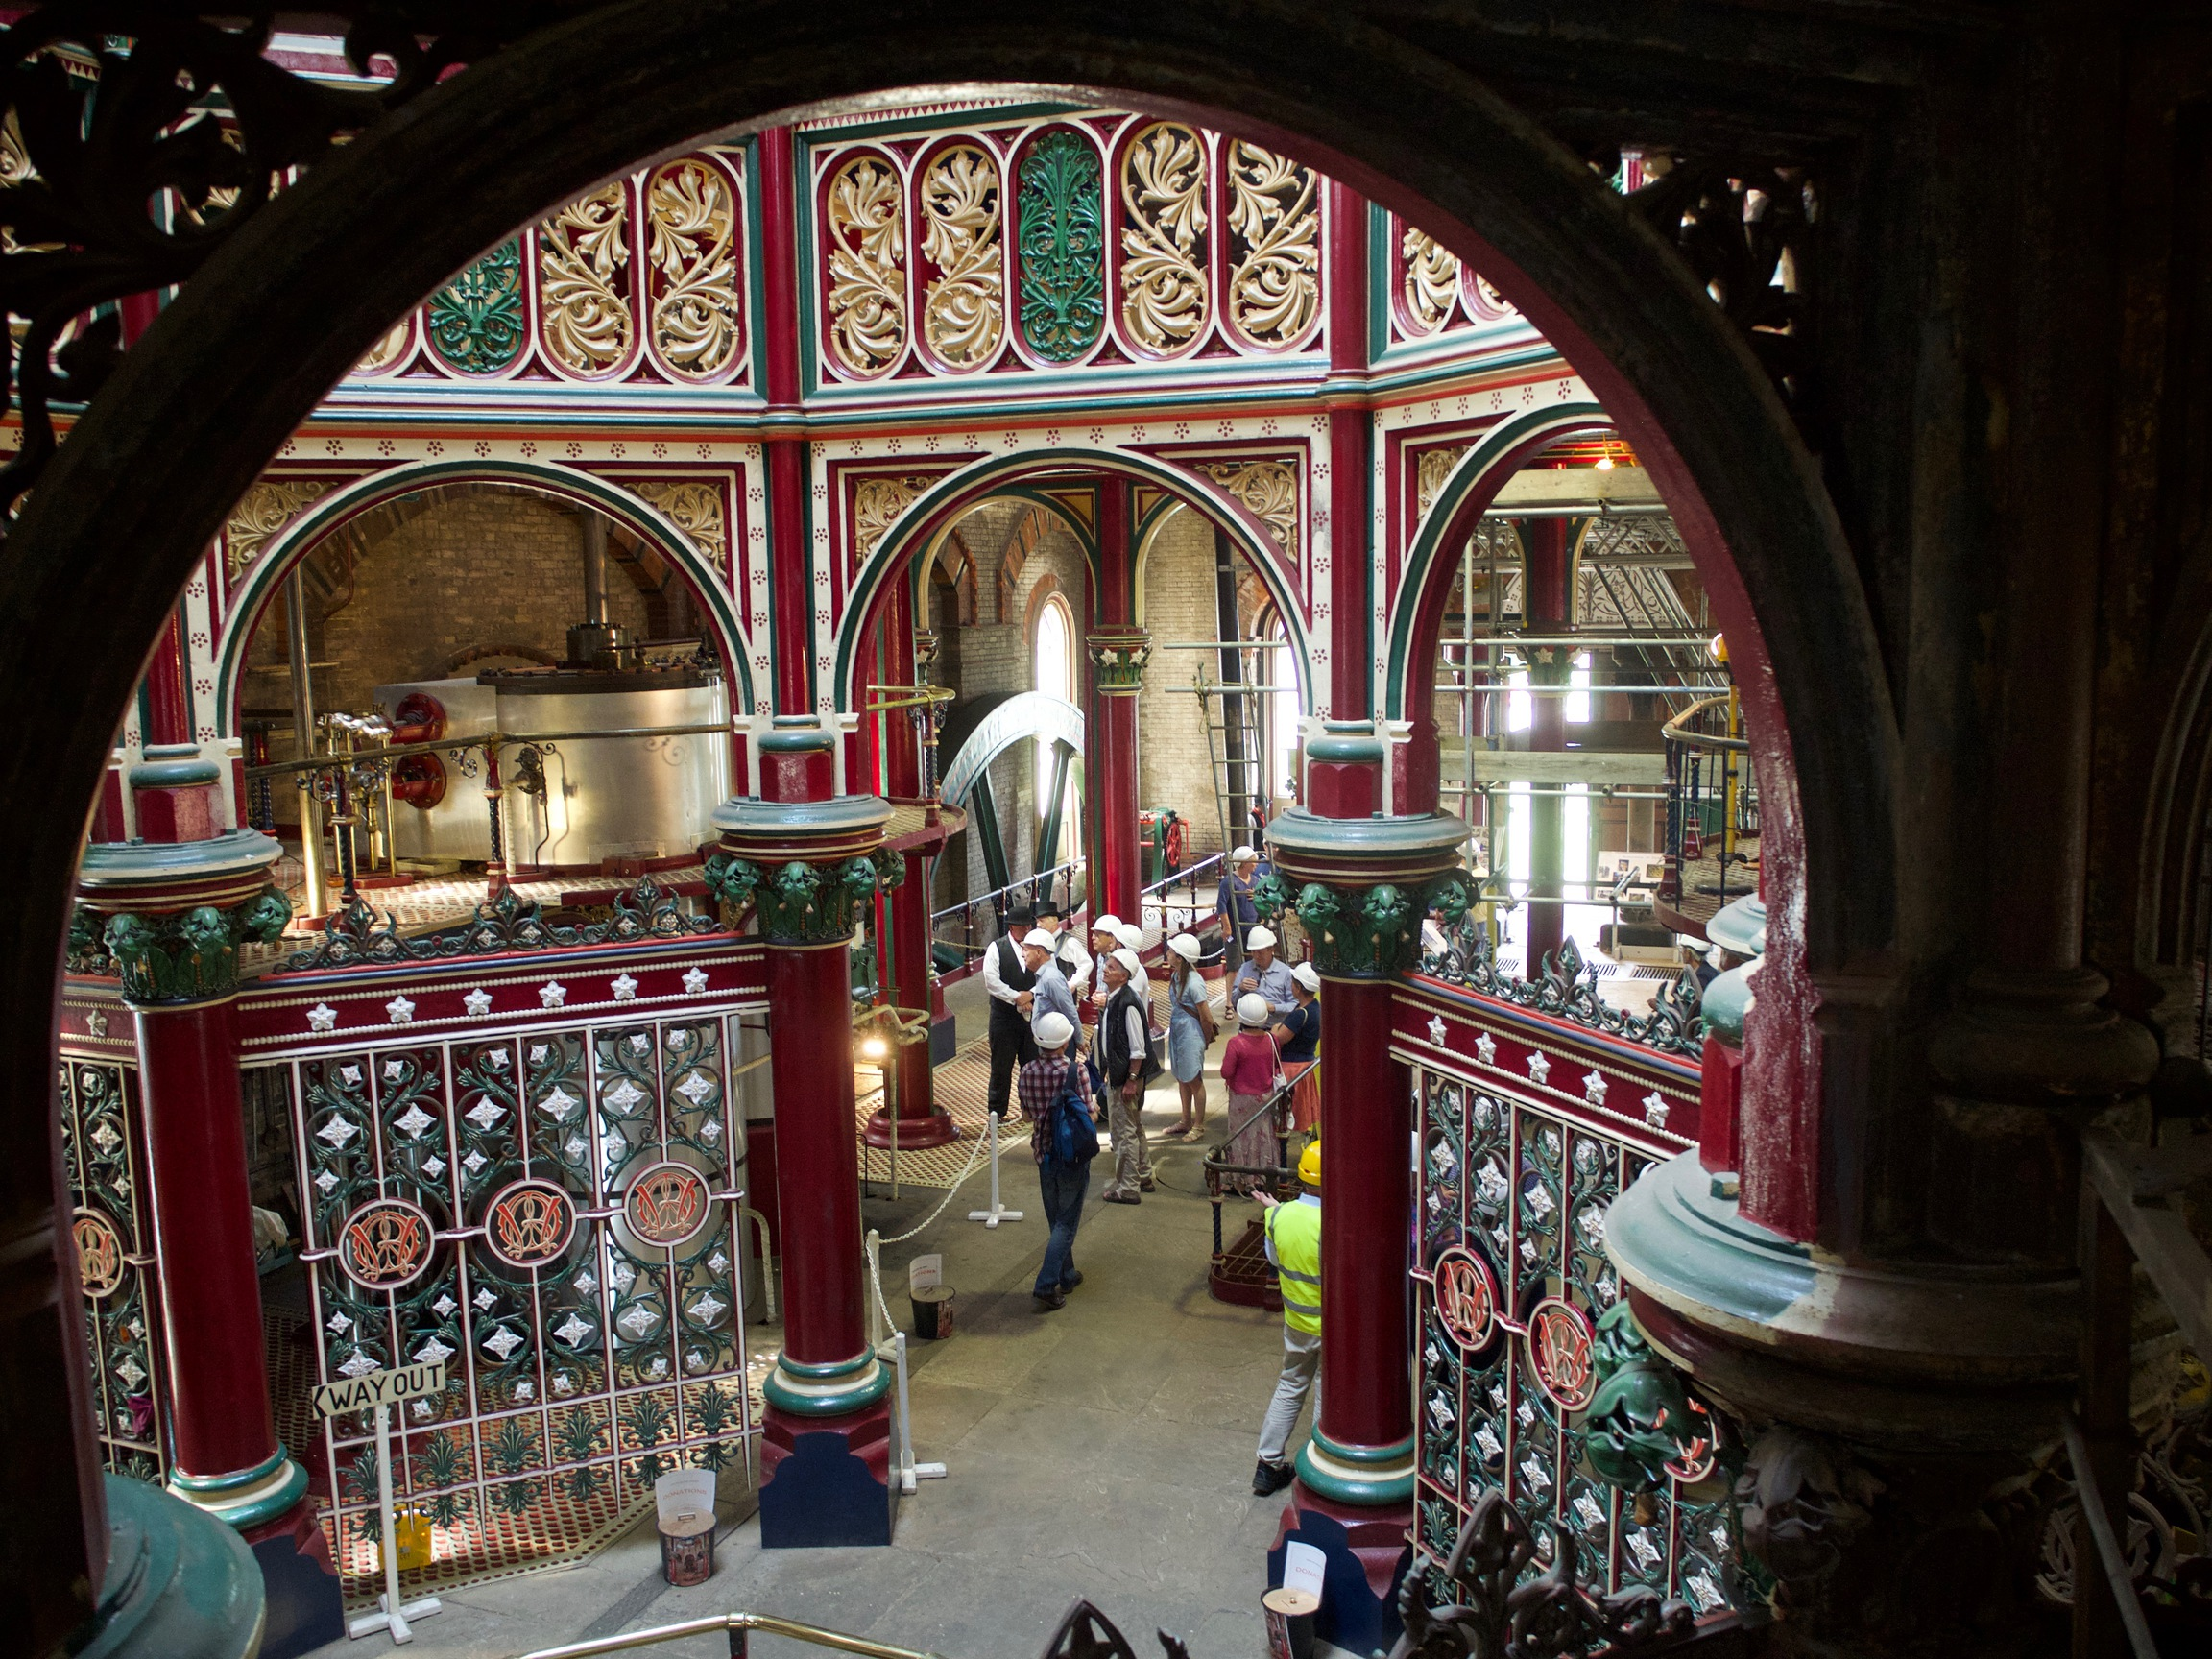 Looking down on gold, red and green metalwork adorning the top of an octagonal area. Red columns mark the octagon.